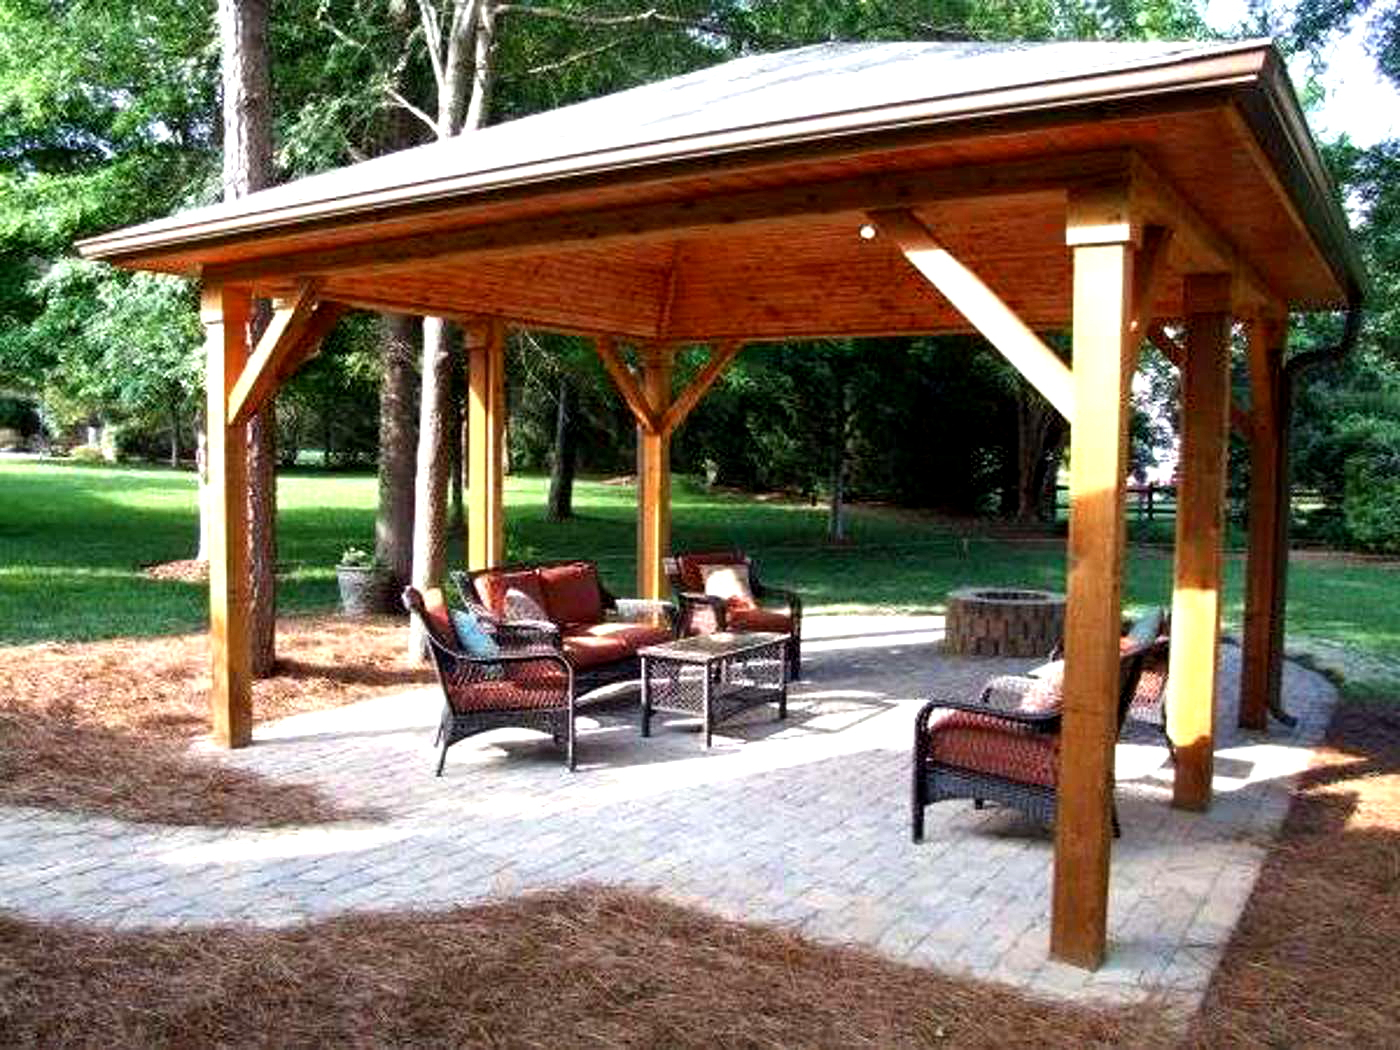 Backyard Pavilion Plans The Latest Home Decor Ideas intended for 13 Some of the Coolest Ways How to Makeover Pavilion Ideas Backyard